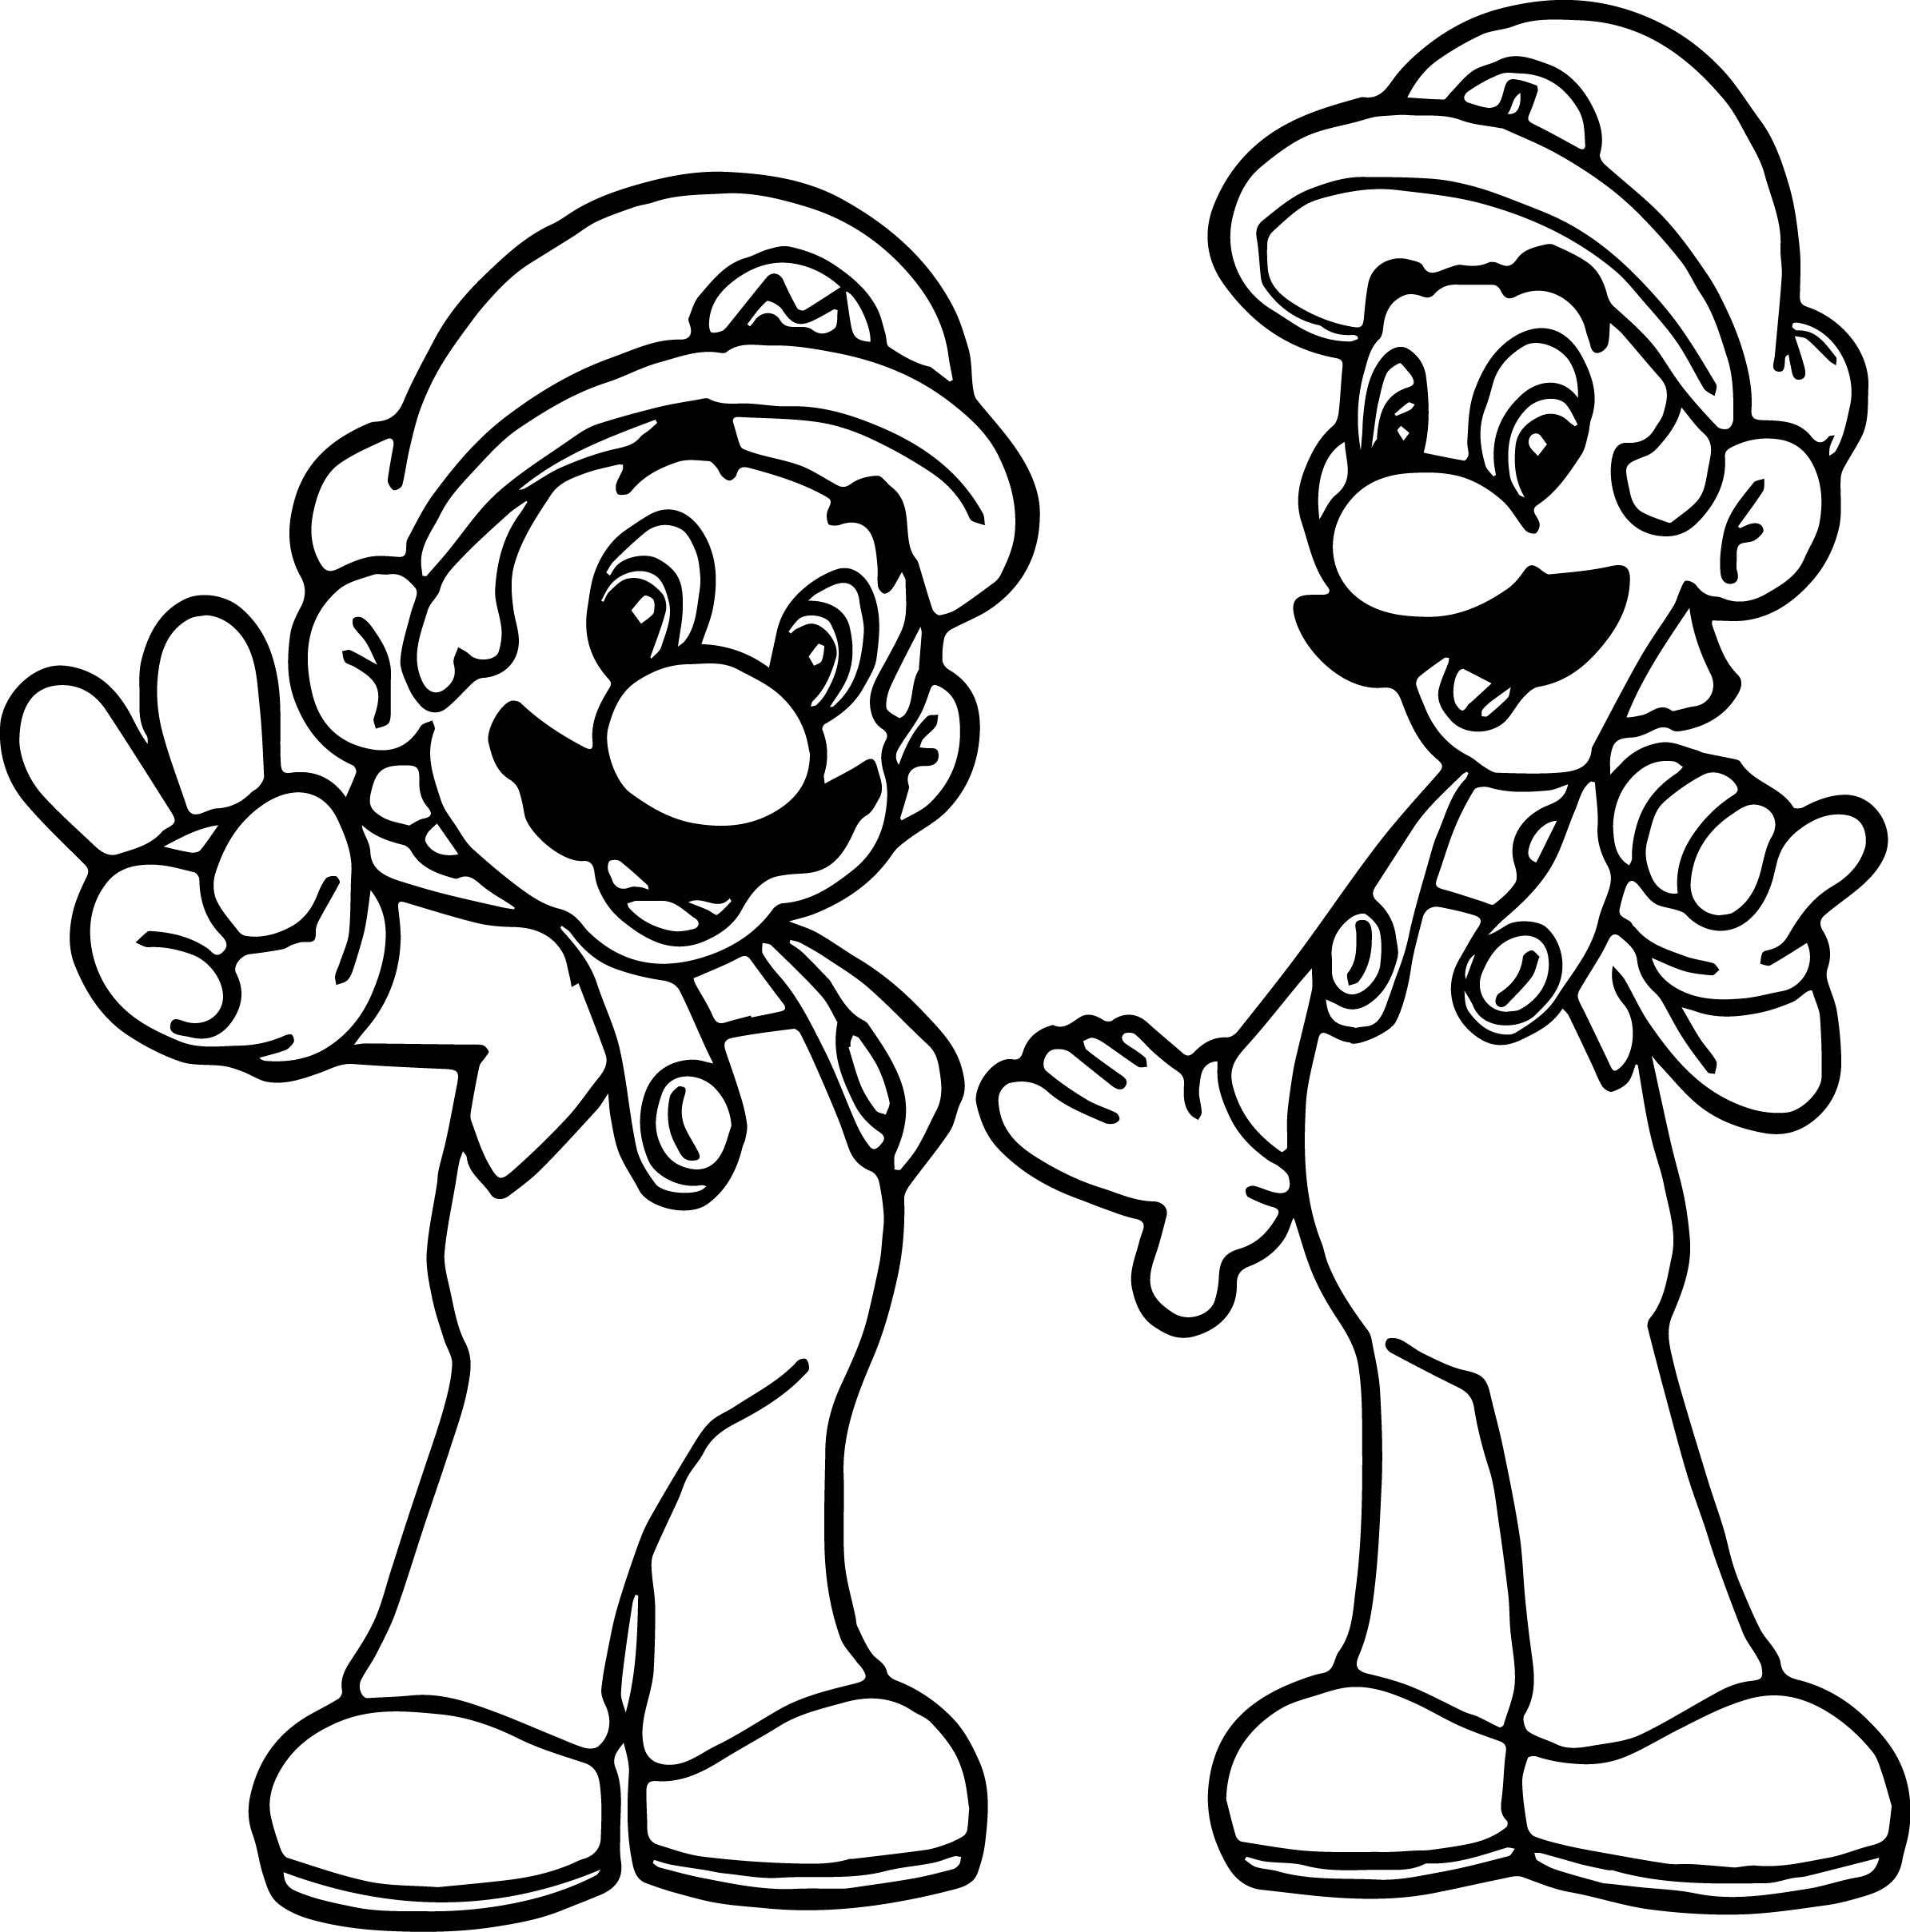 2389x2417 Free Printable Mario Coloring Pages Forddler Super Pictures